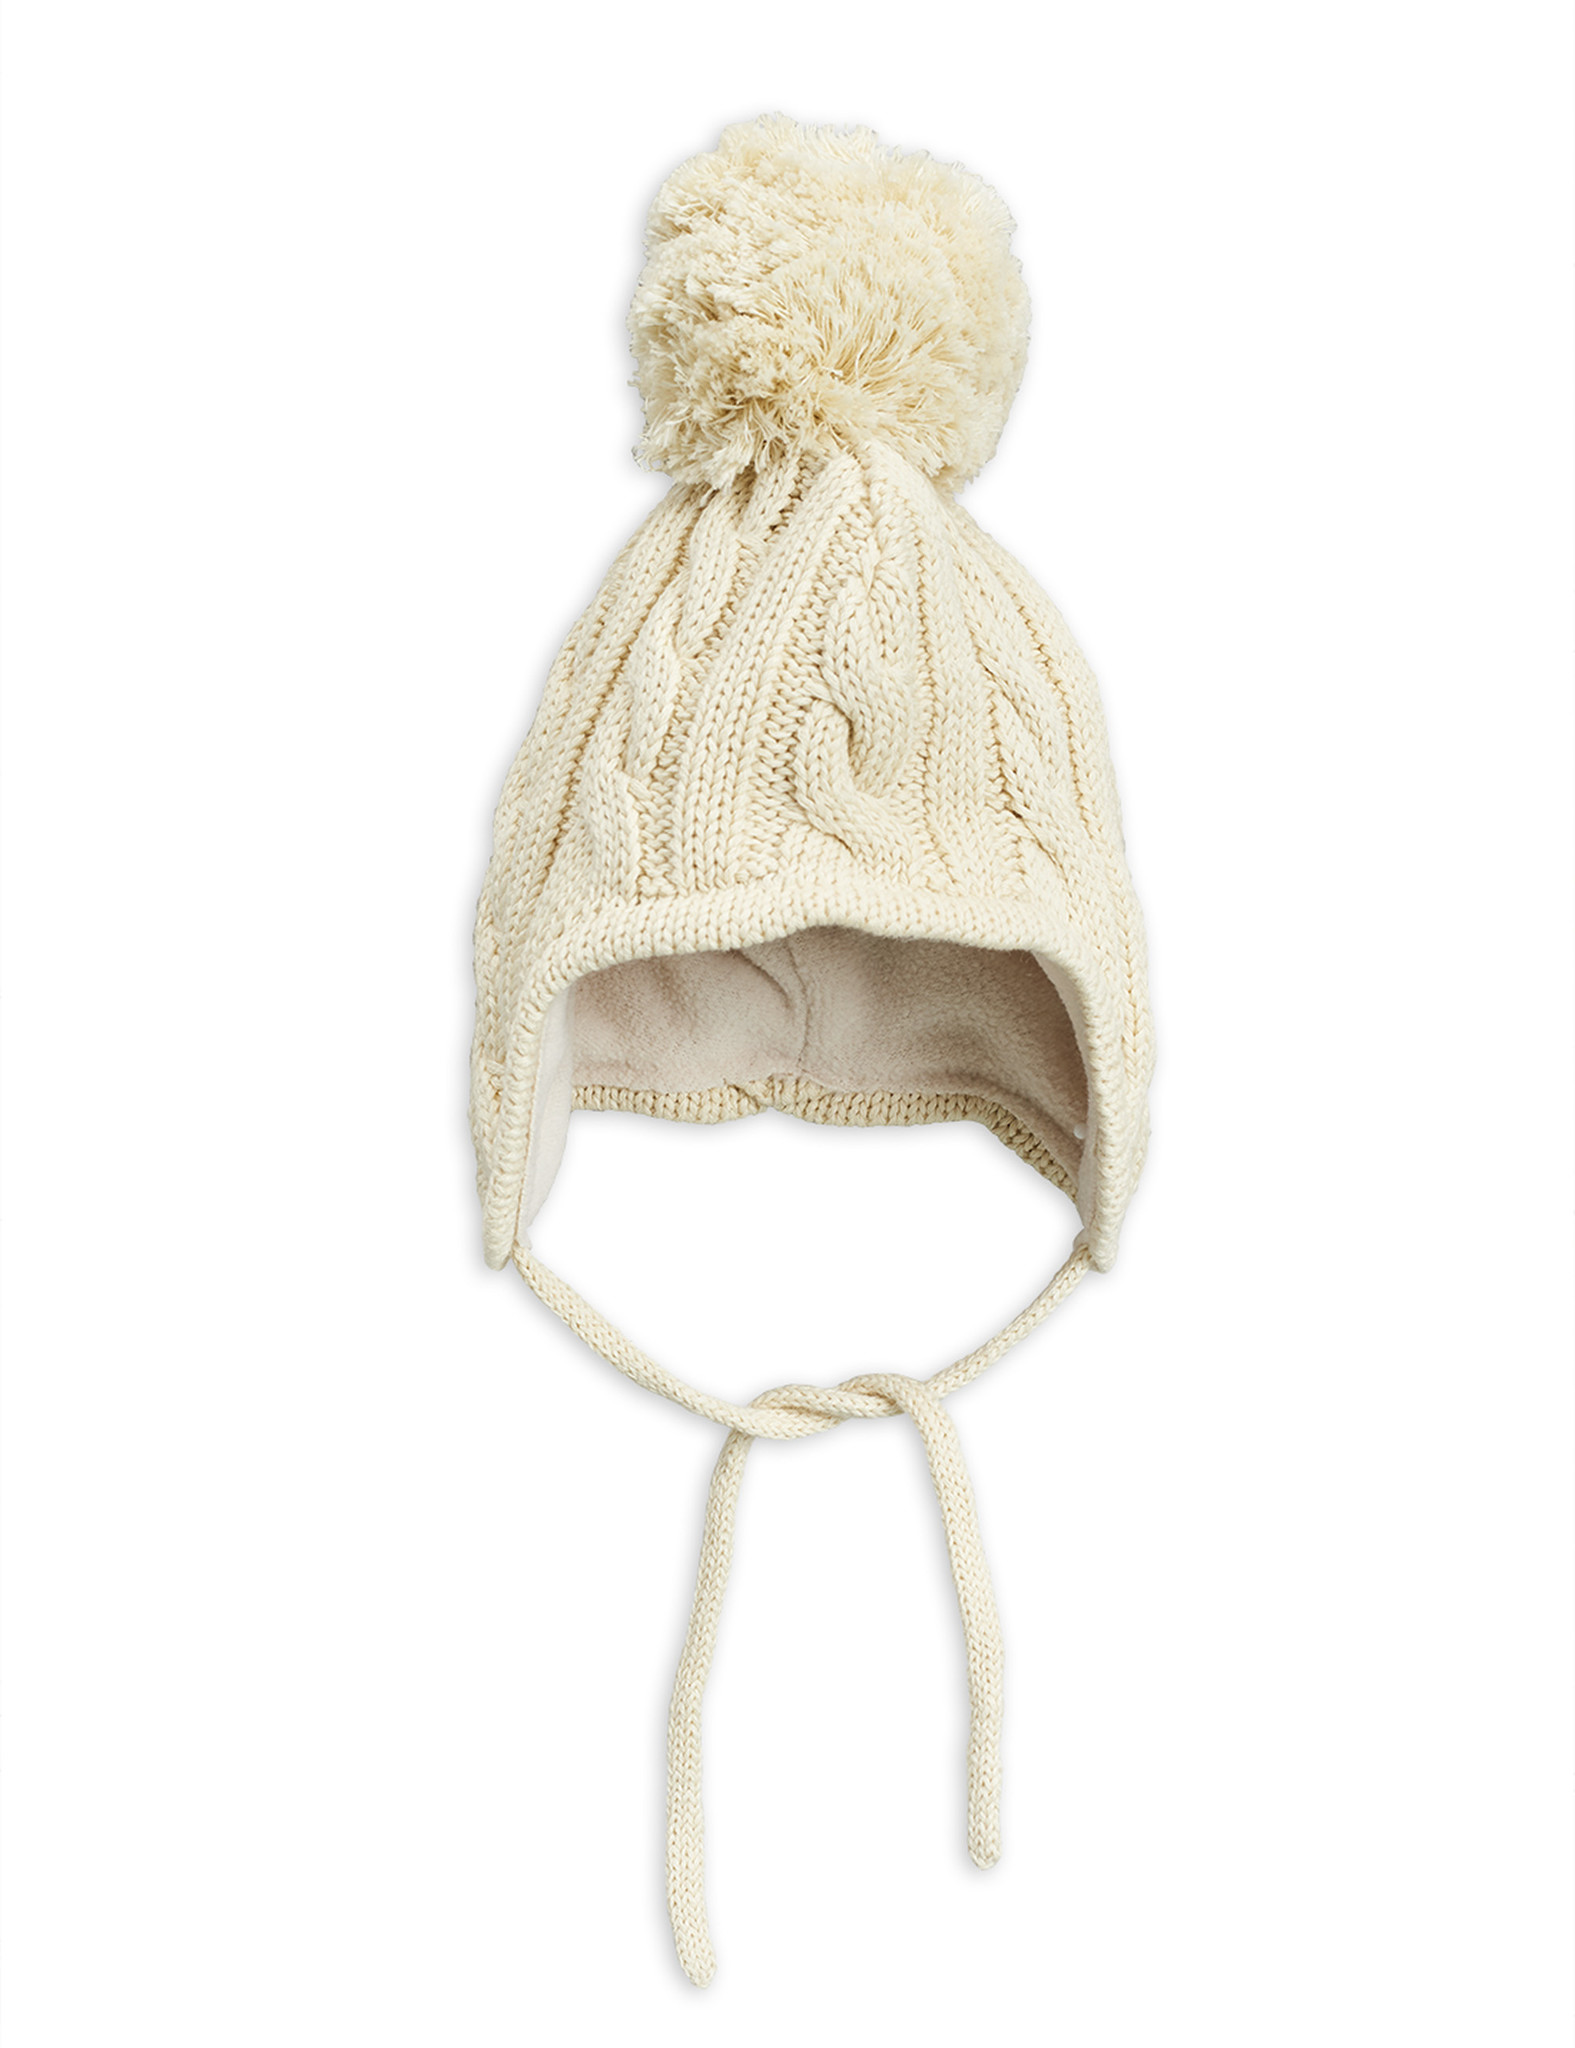 Cable knitted baby hat - Offwhite-1